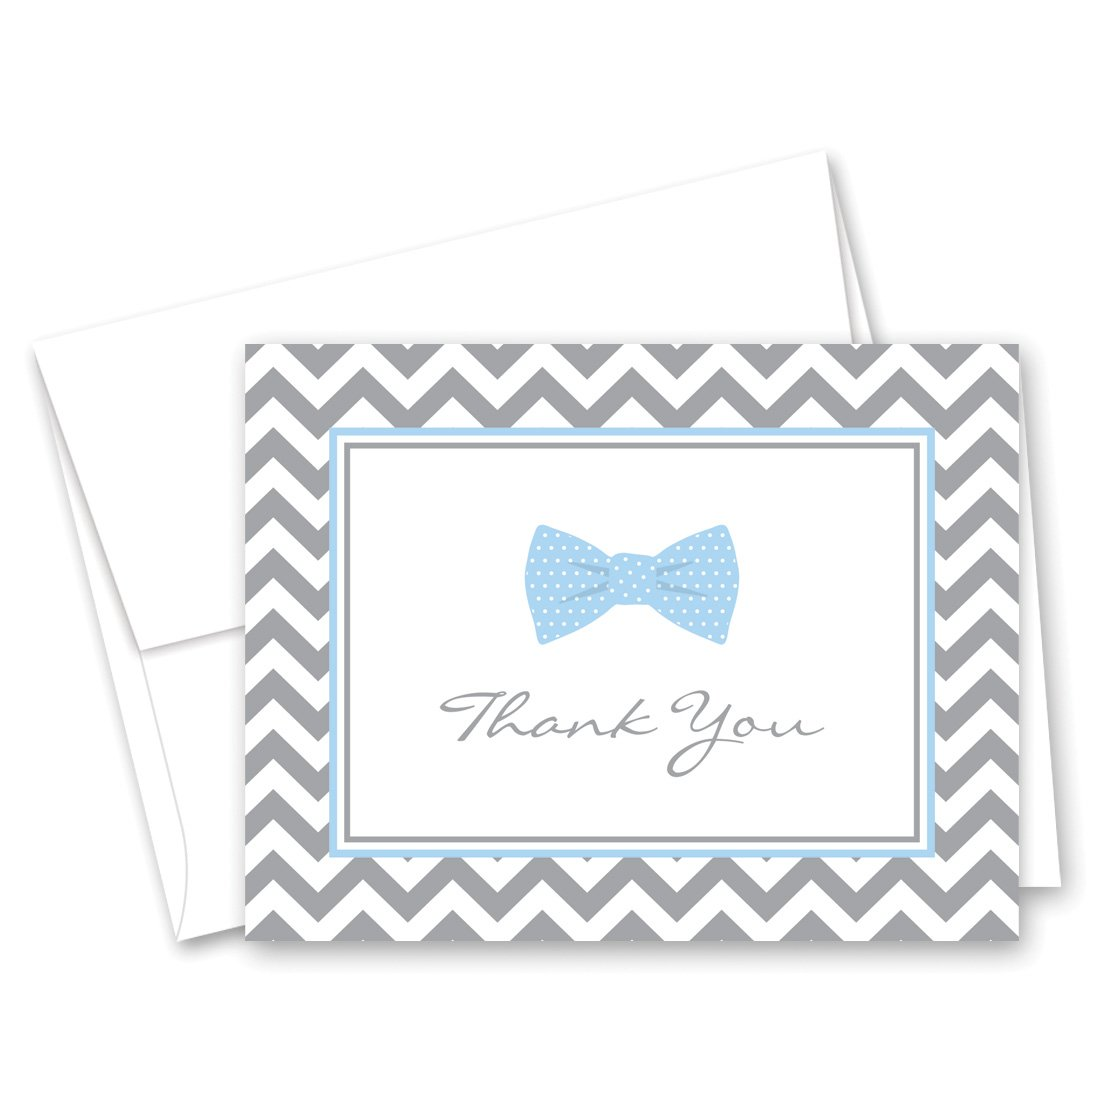 50 Cnt Little Man Bow Tie Baby Shower Thank You Cards Blue